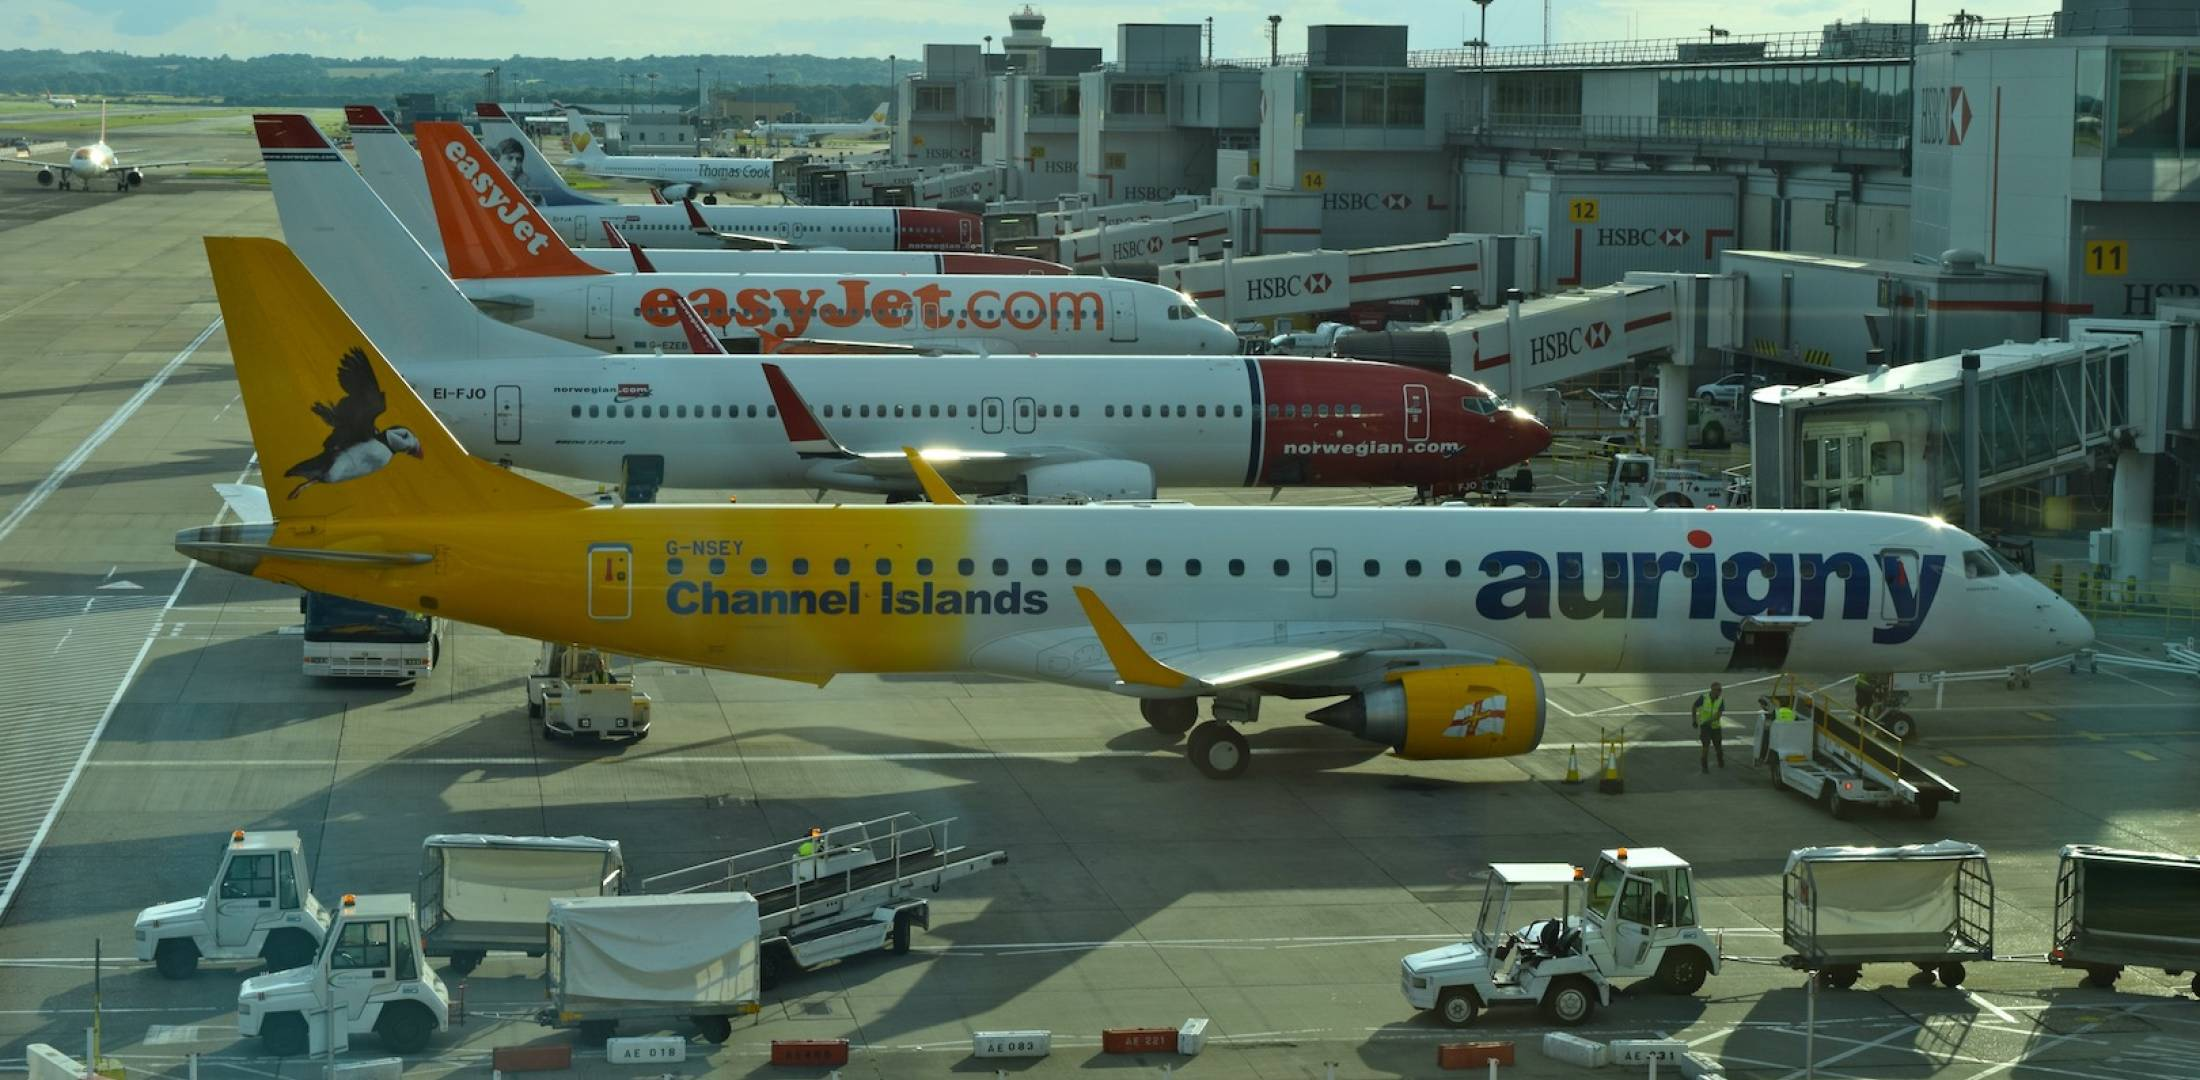 Airliners at their gates at London's Gatwick Airport